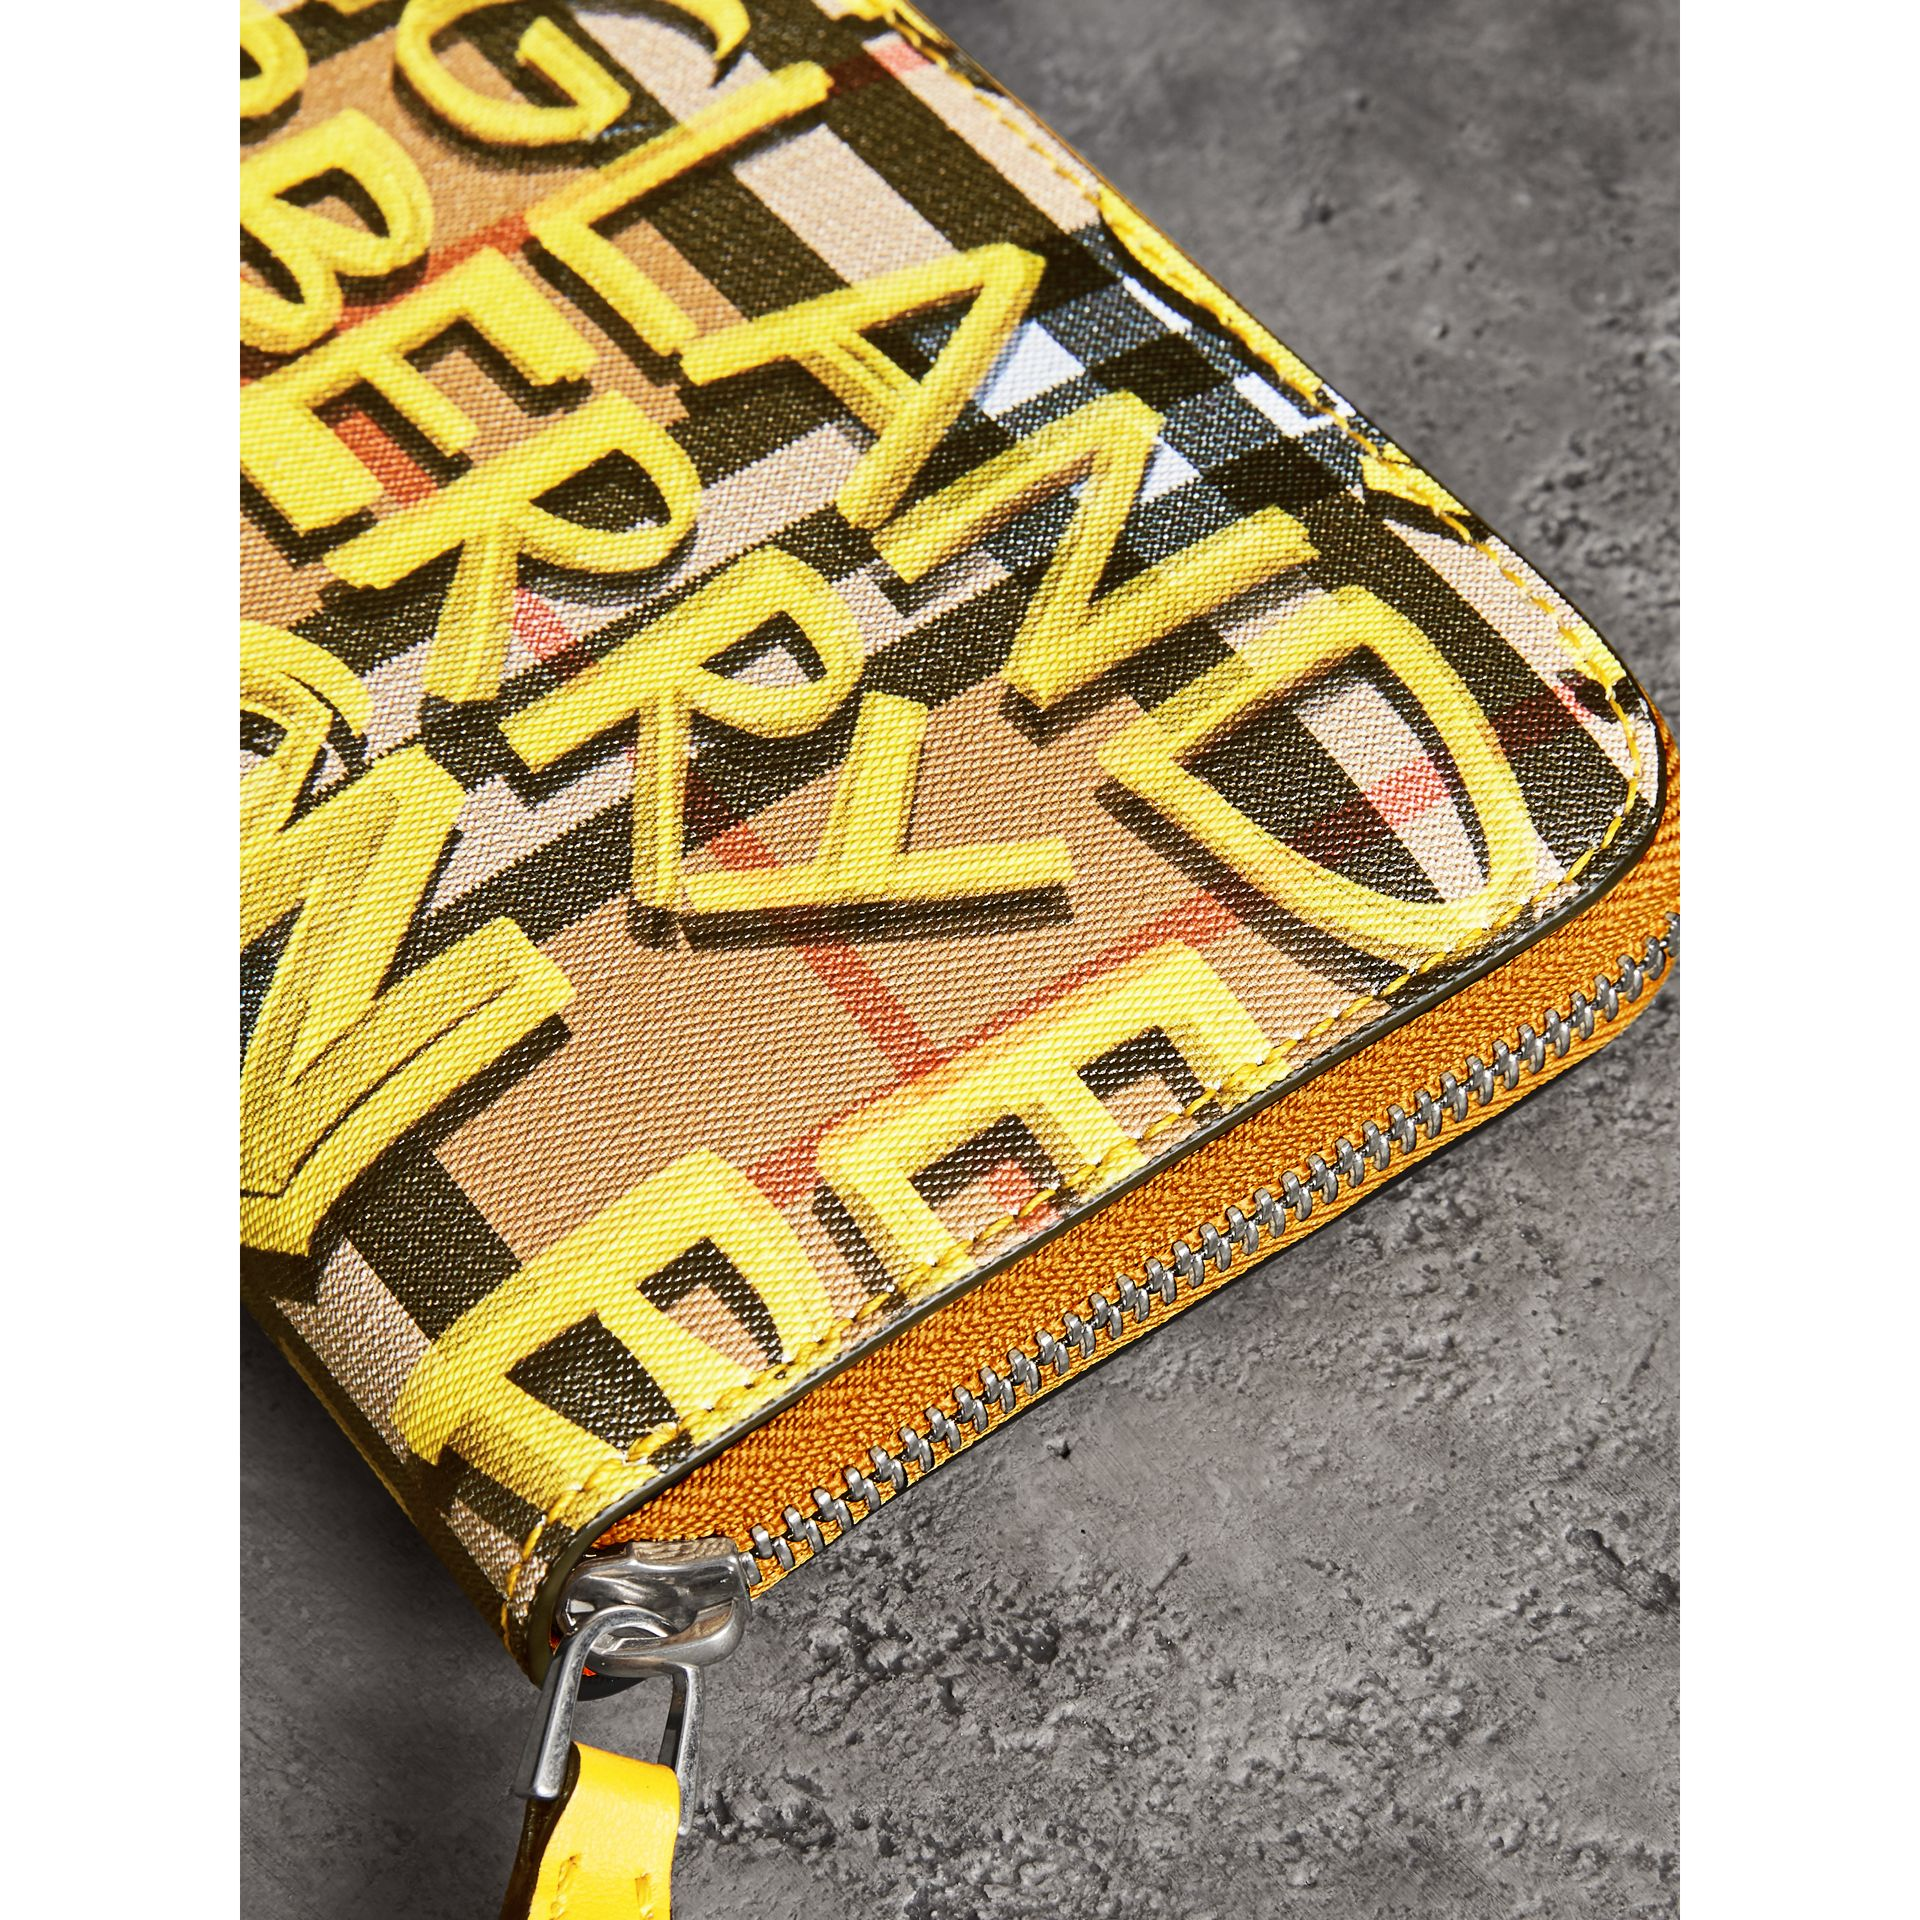 Graffiti Print Vintage Check Leather Ziparound Wallet in Yellow - Women | Burberry - gallery image 1